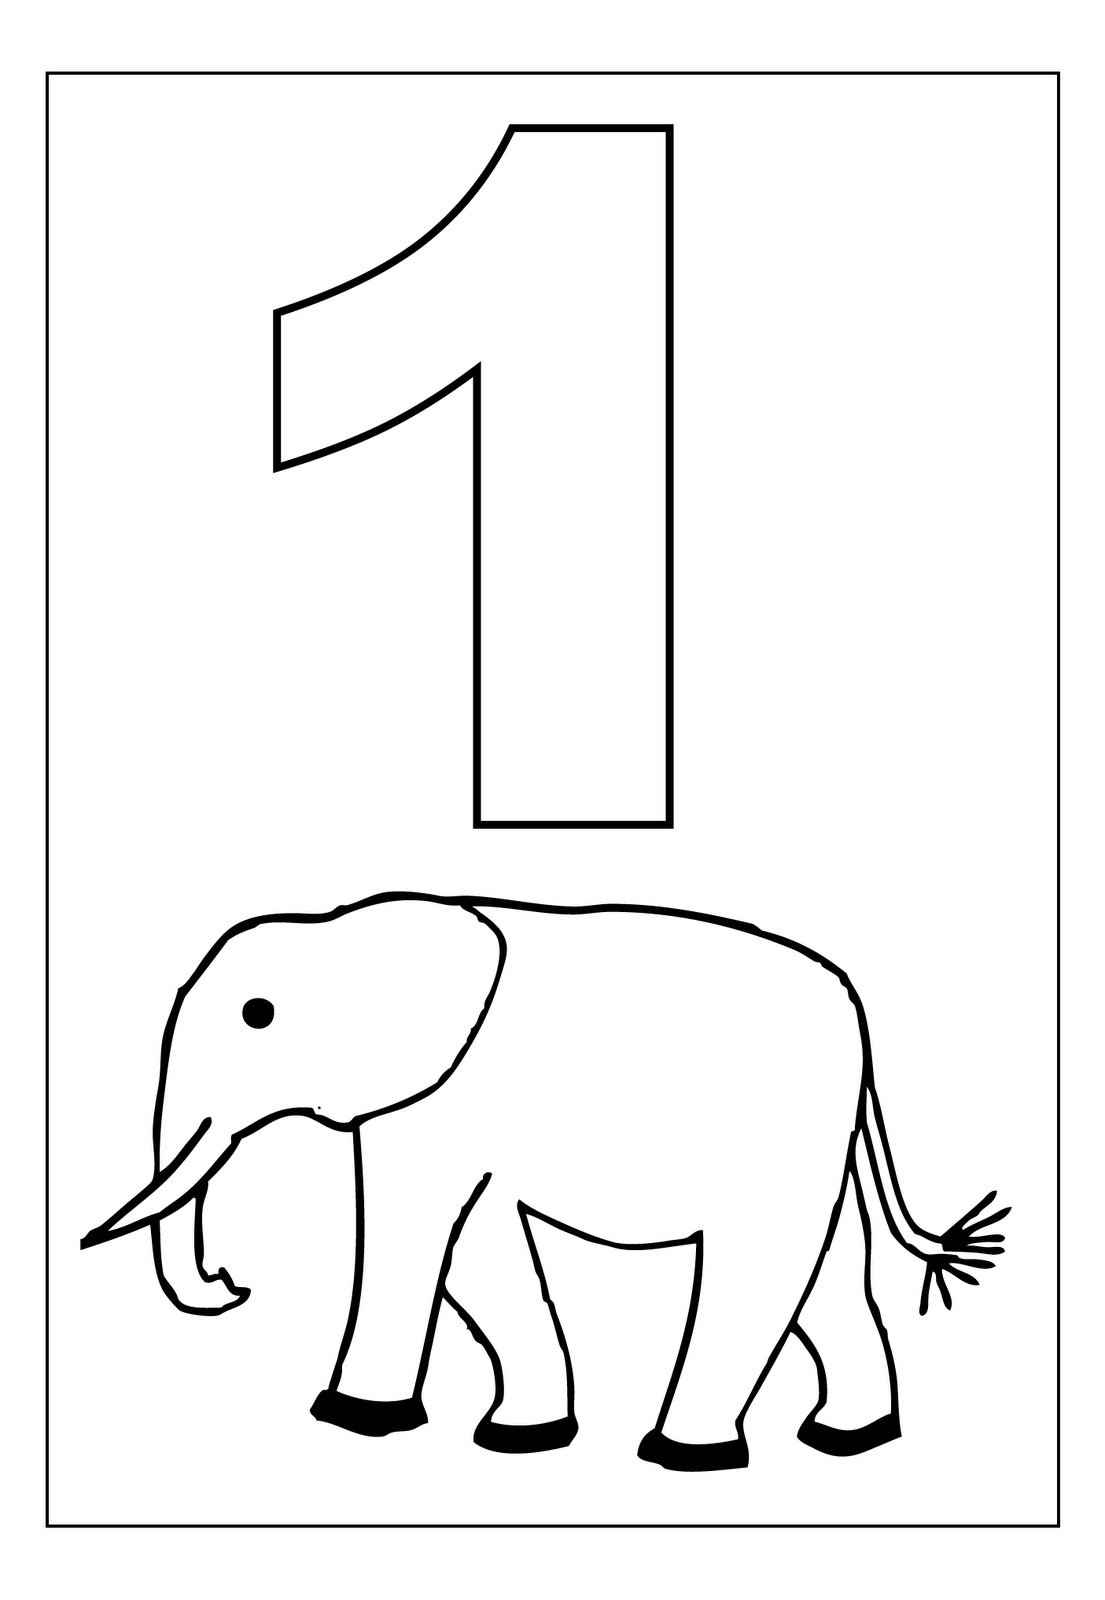 Number 1 Coloring Pages